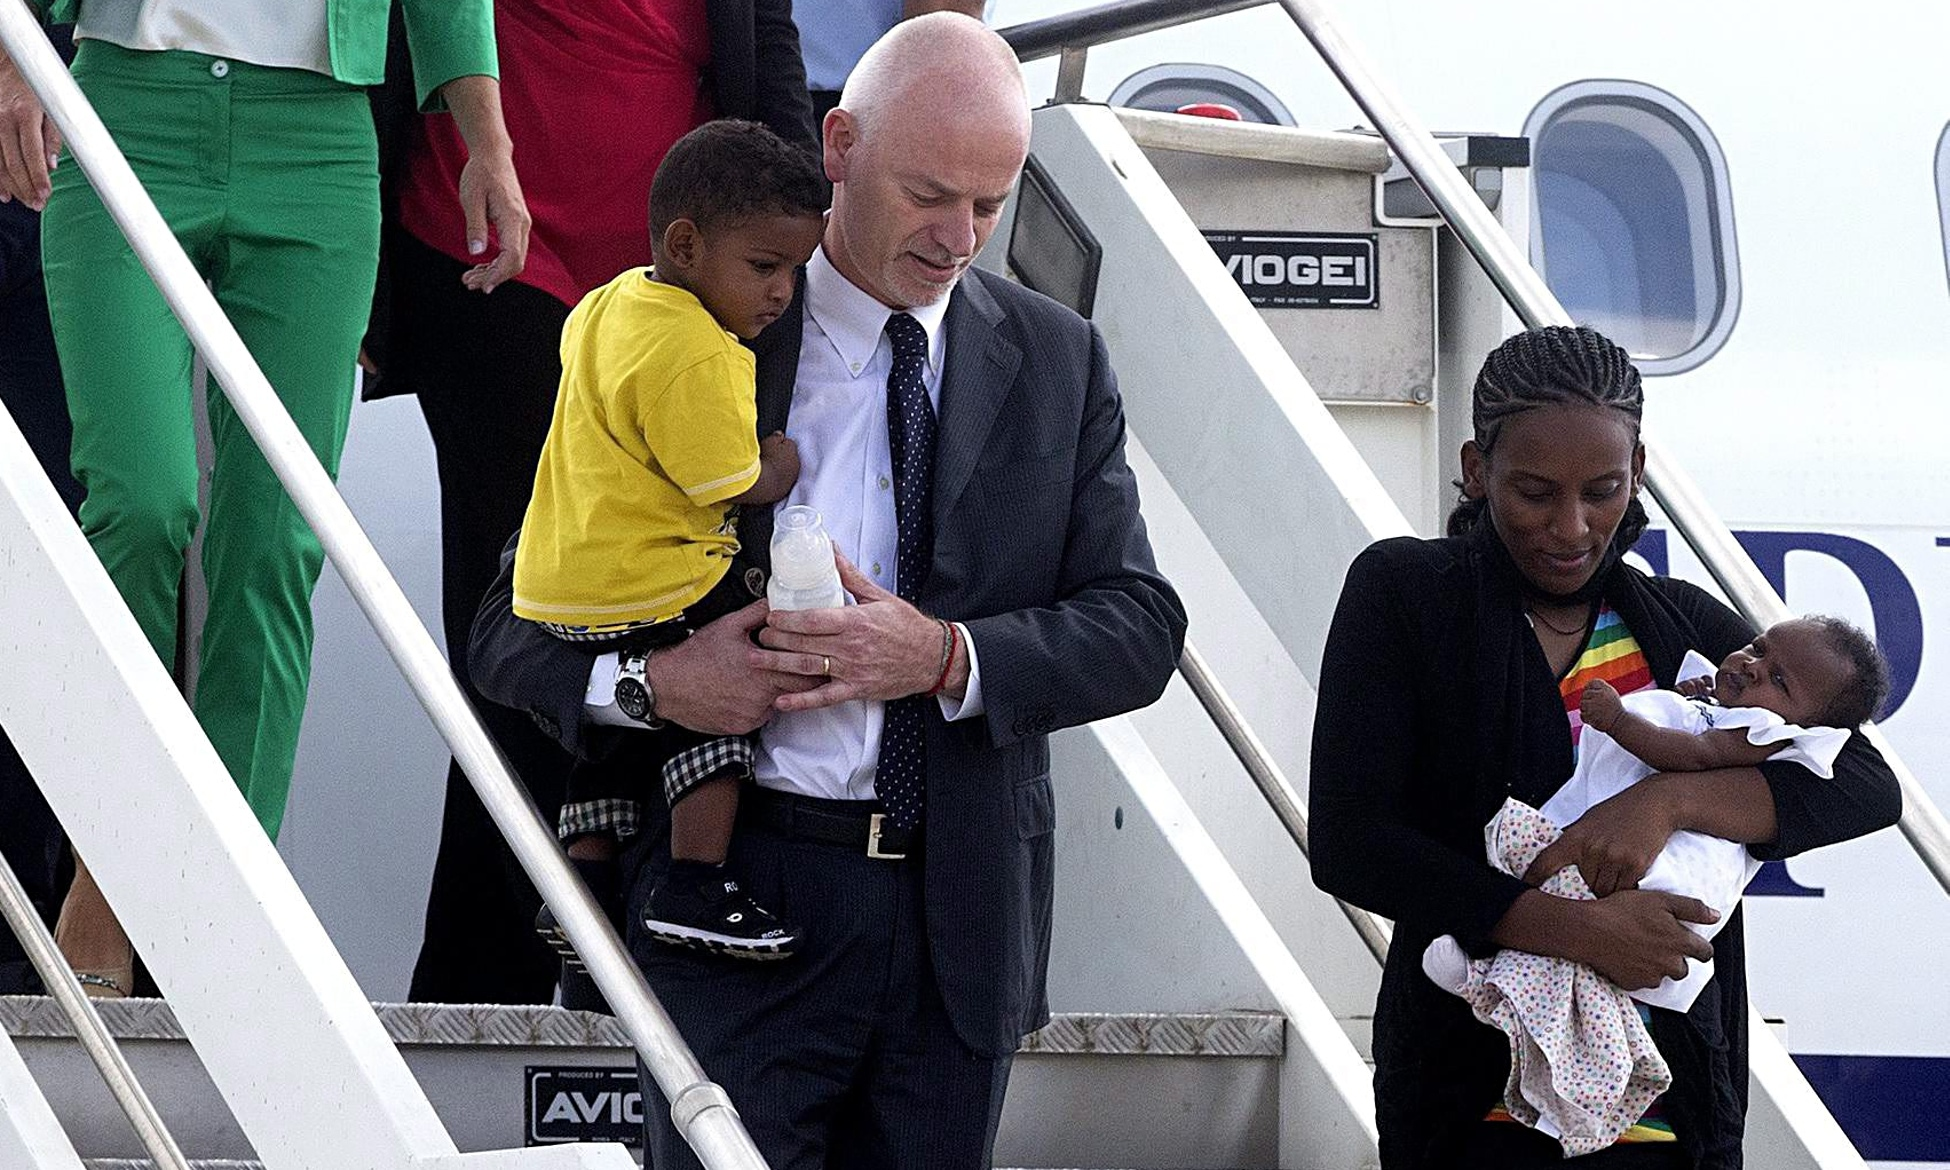 Sudanese woman spared death sentence for apostasy arrives in Italy